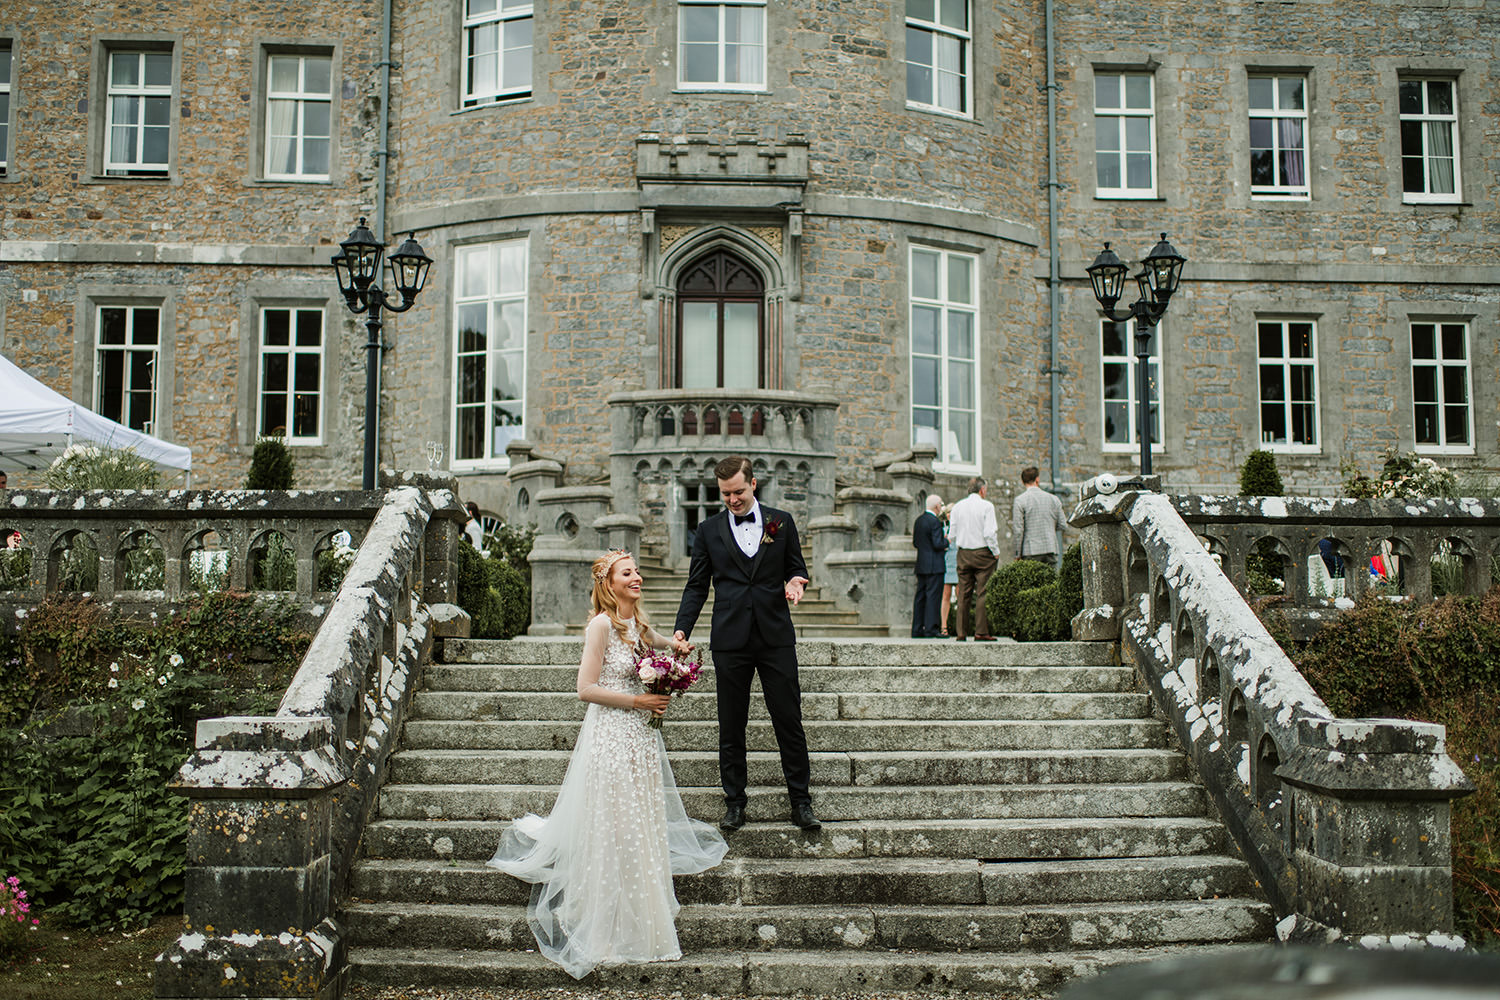 Wedding in Markree Castle co.Sligo 00040